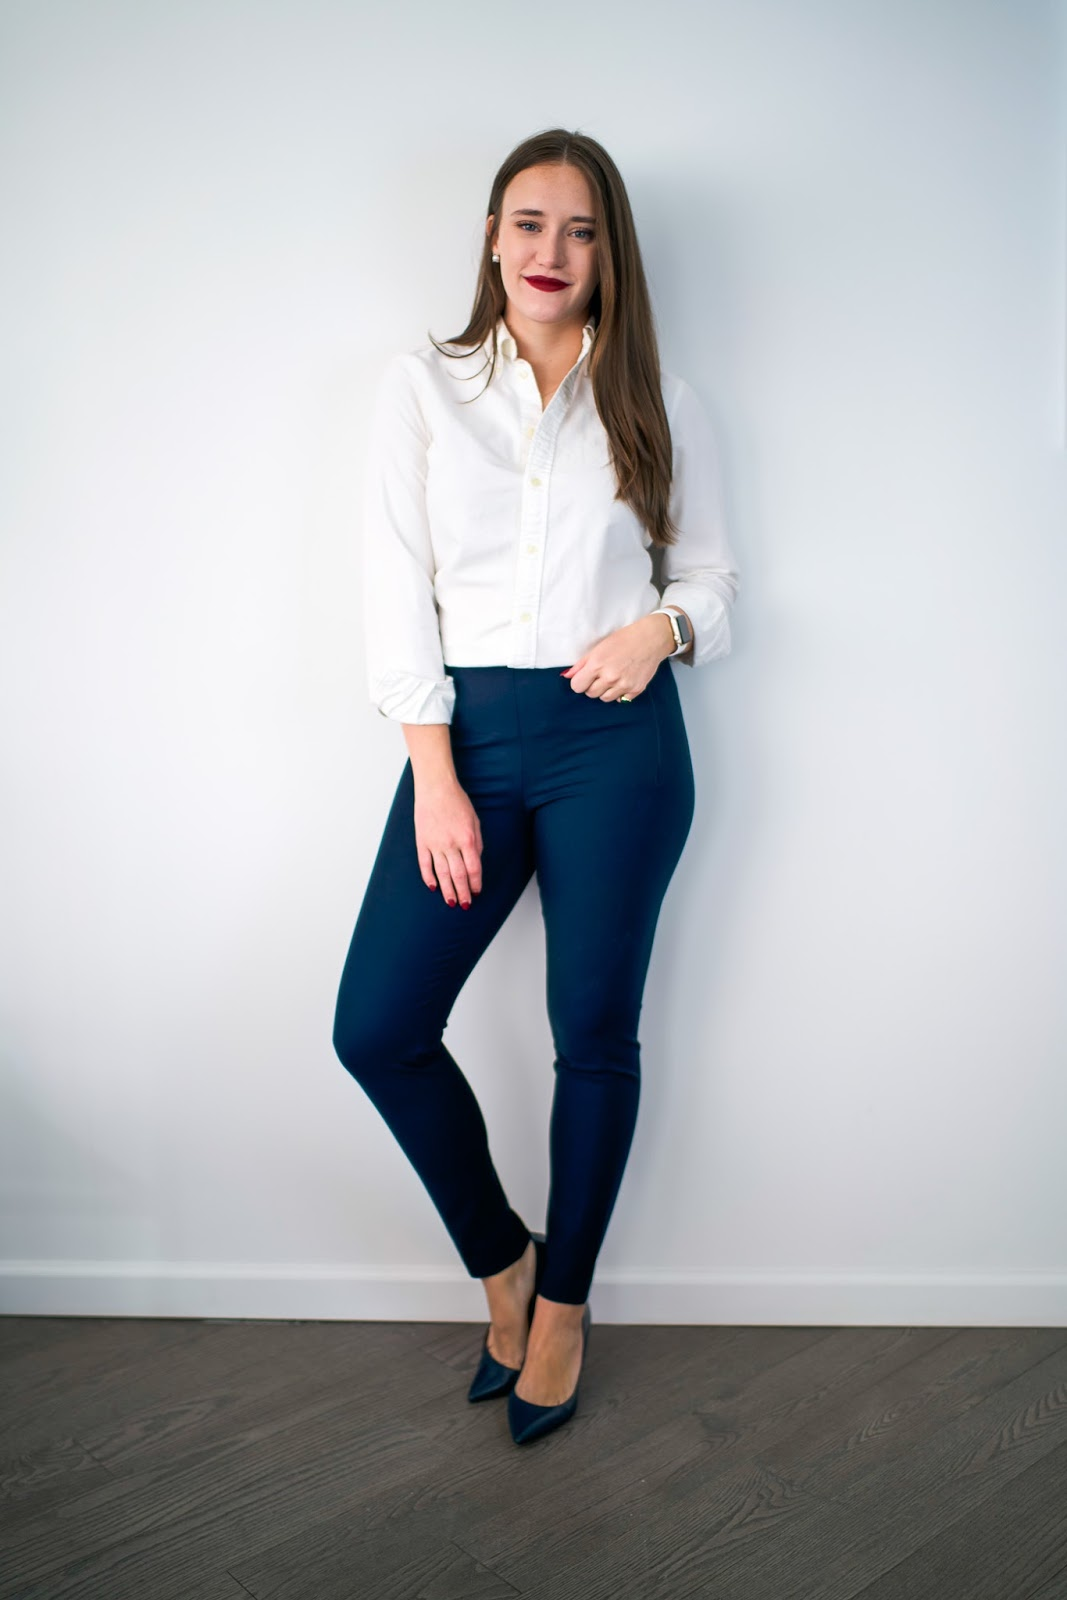 The Ultimate Work Pant Review by popular New York fashion blogger Covering the Bases